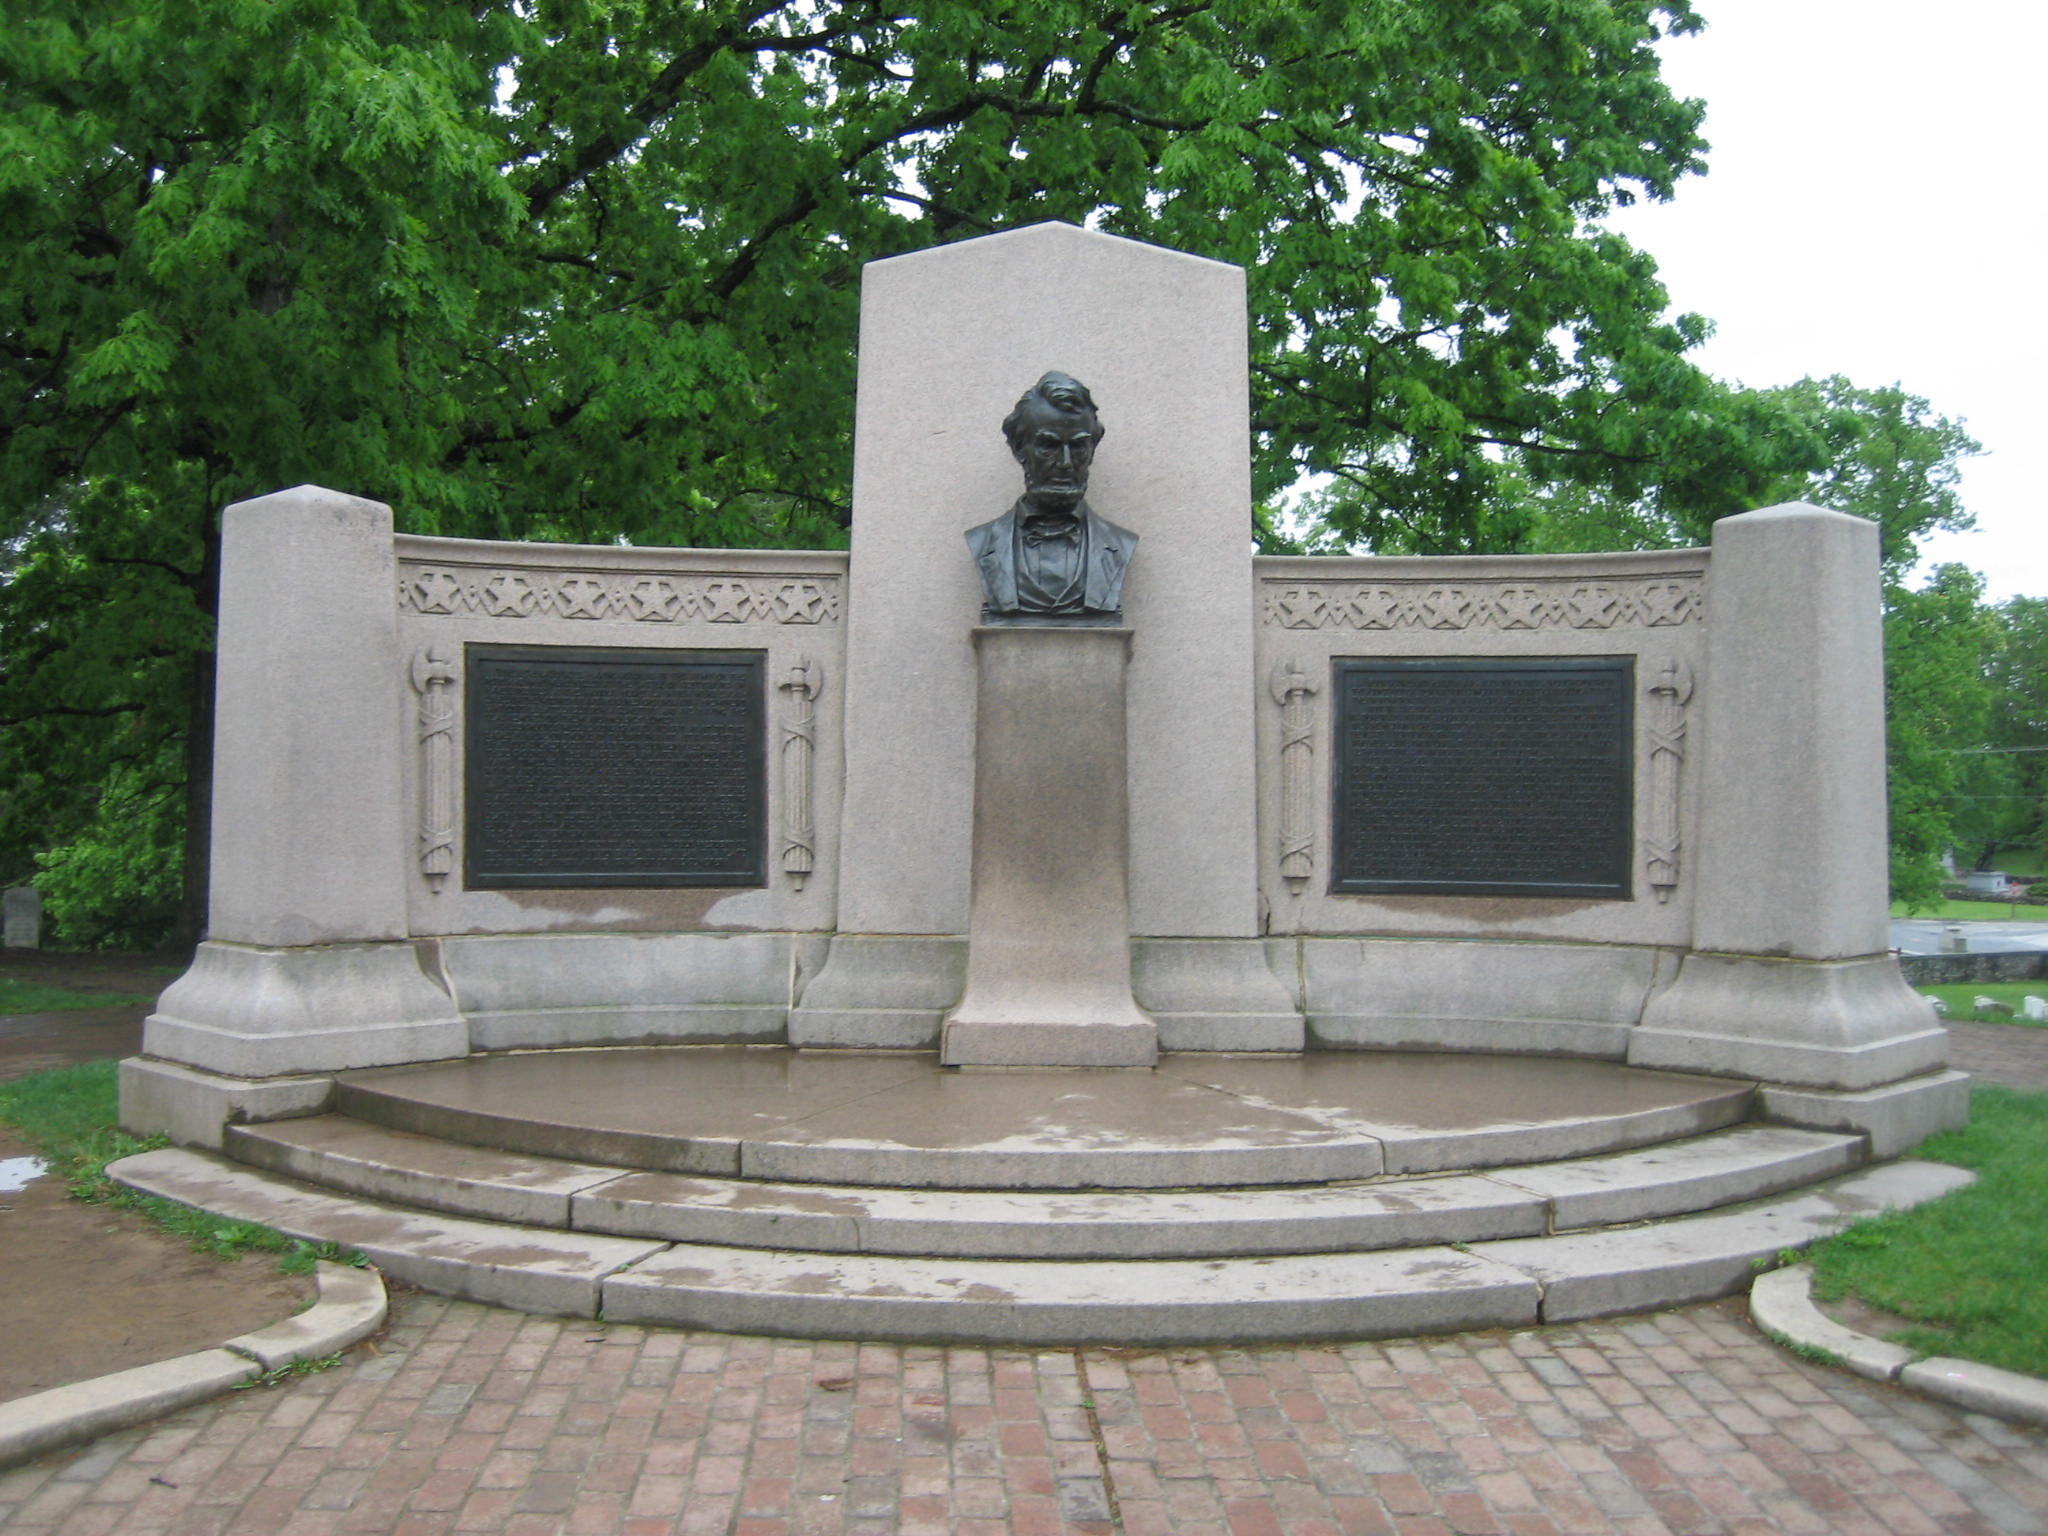 Gettysburg Address Memorial, located about 300 yards south of where Lincoln delivered the Gettysburg Address.